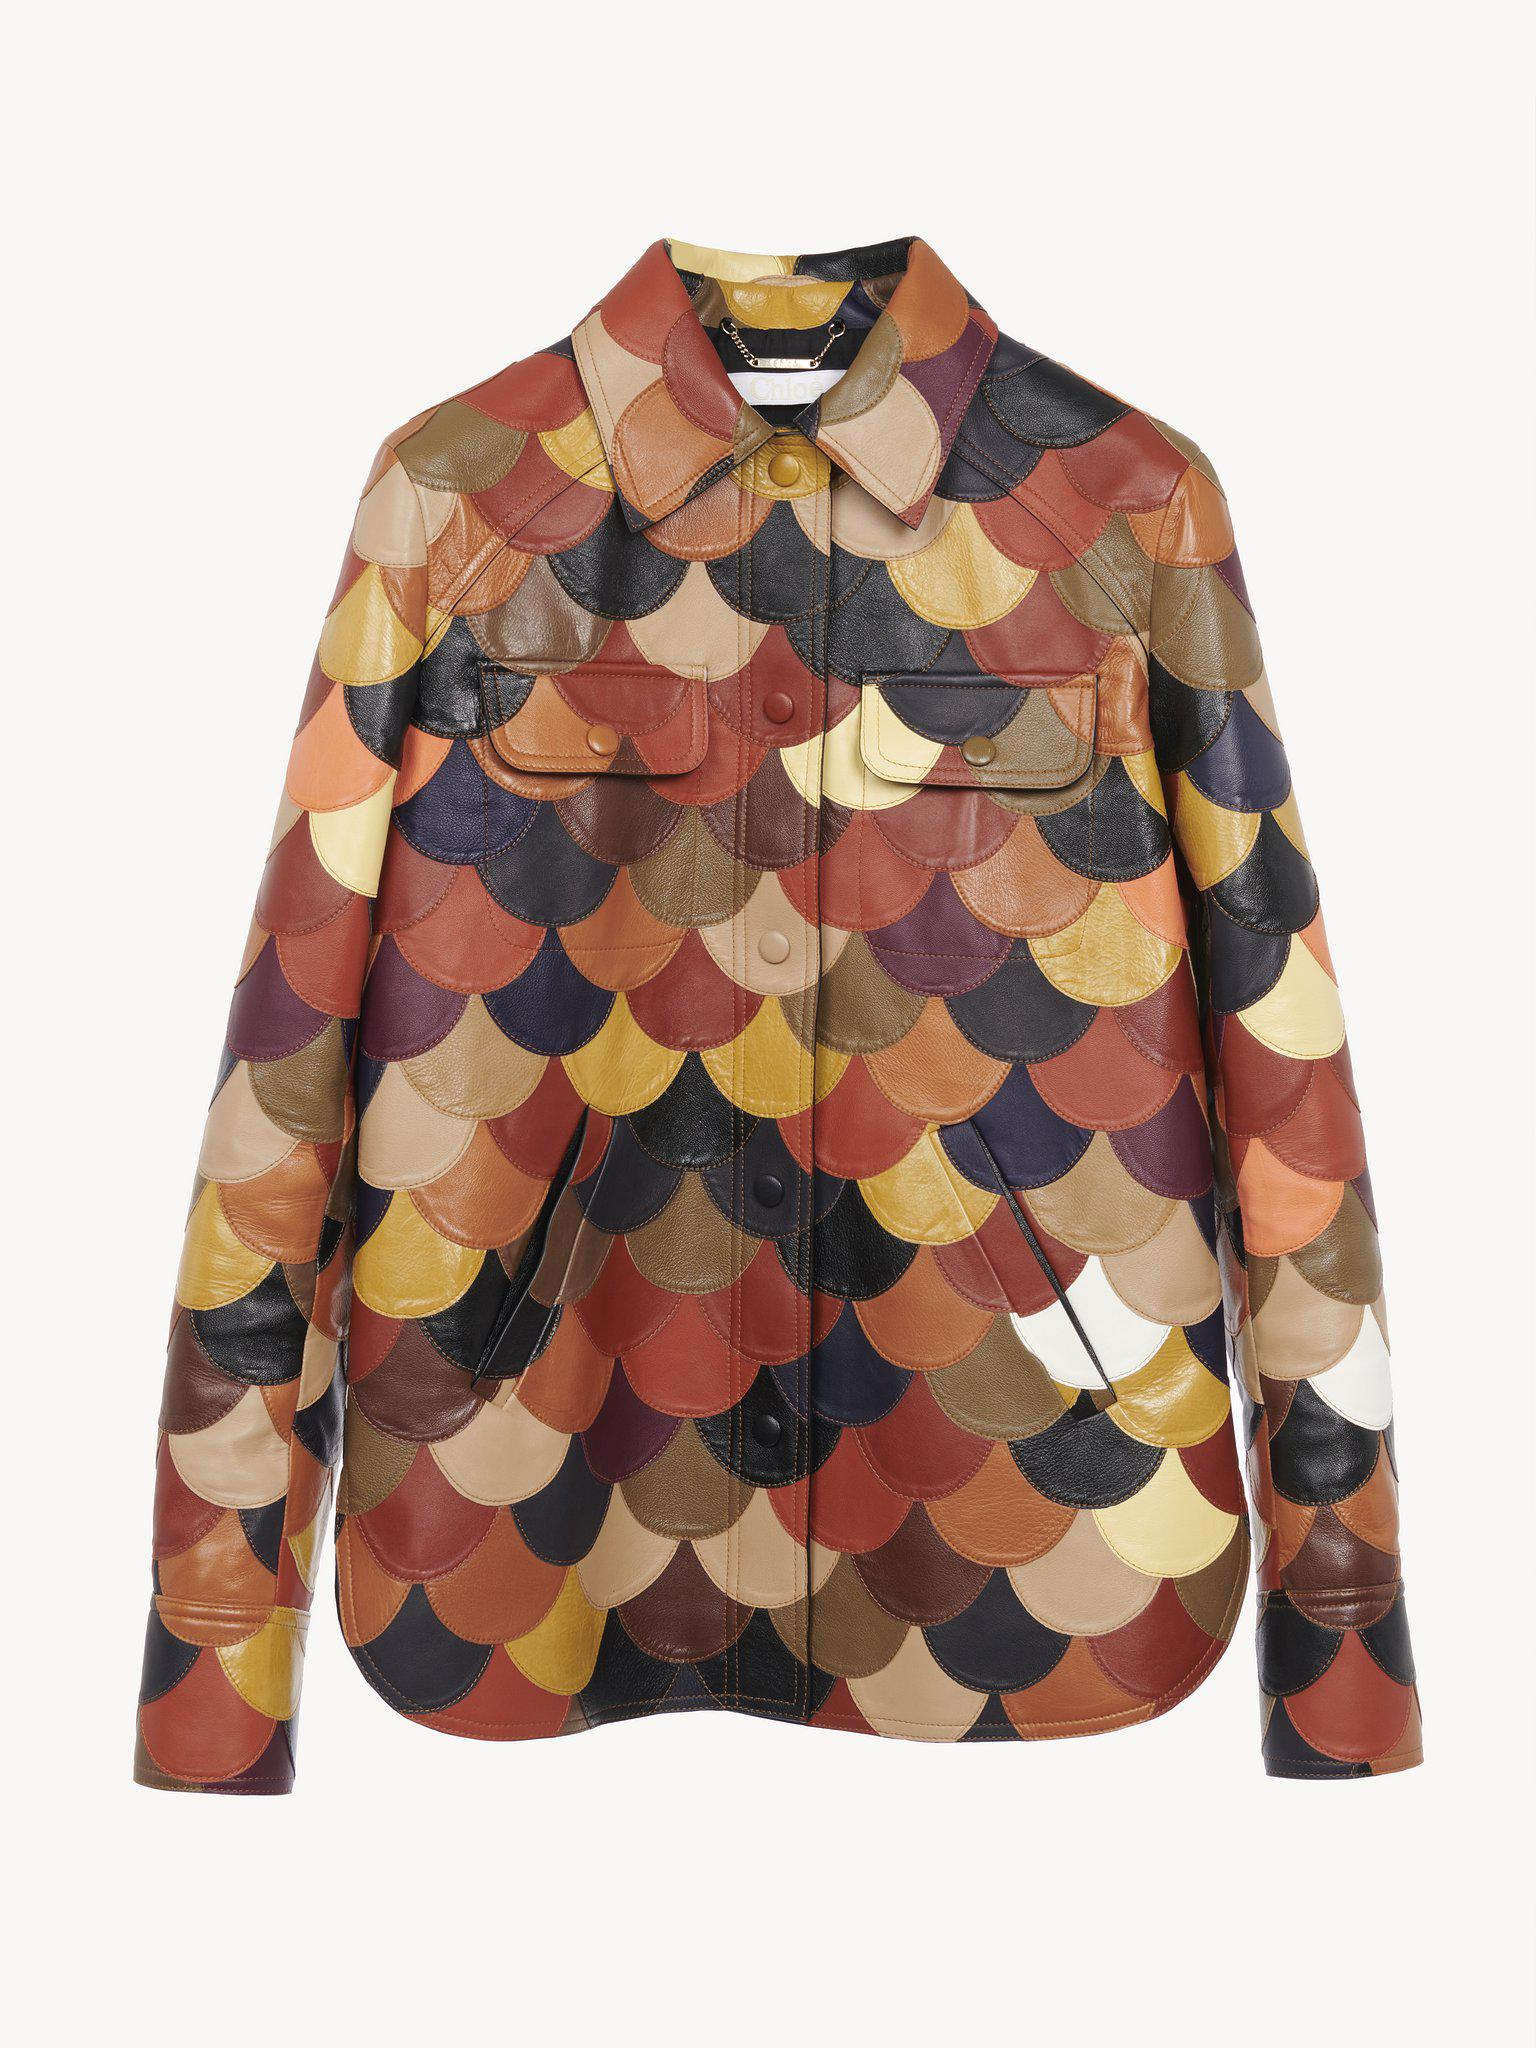 MULTICOLORED PATCHWORK LEATHER JACKET